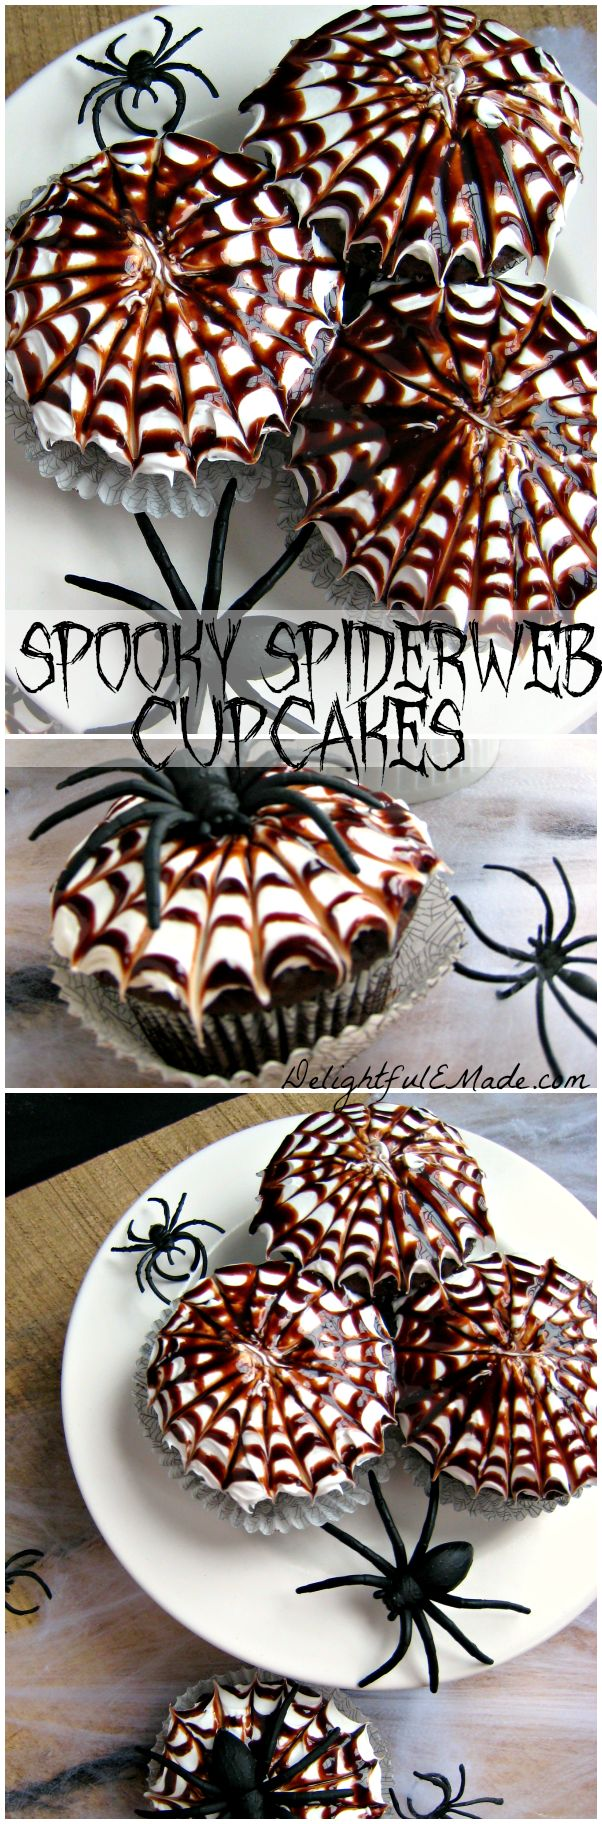 "Spooky Spiderweb Cupcakes  - Moist chocolate cupcakes are topped with a vanilla frosting and chocolate swirl spiderwebs, making these cupcakes ""Spooktacular!"""